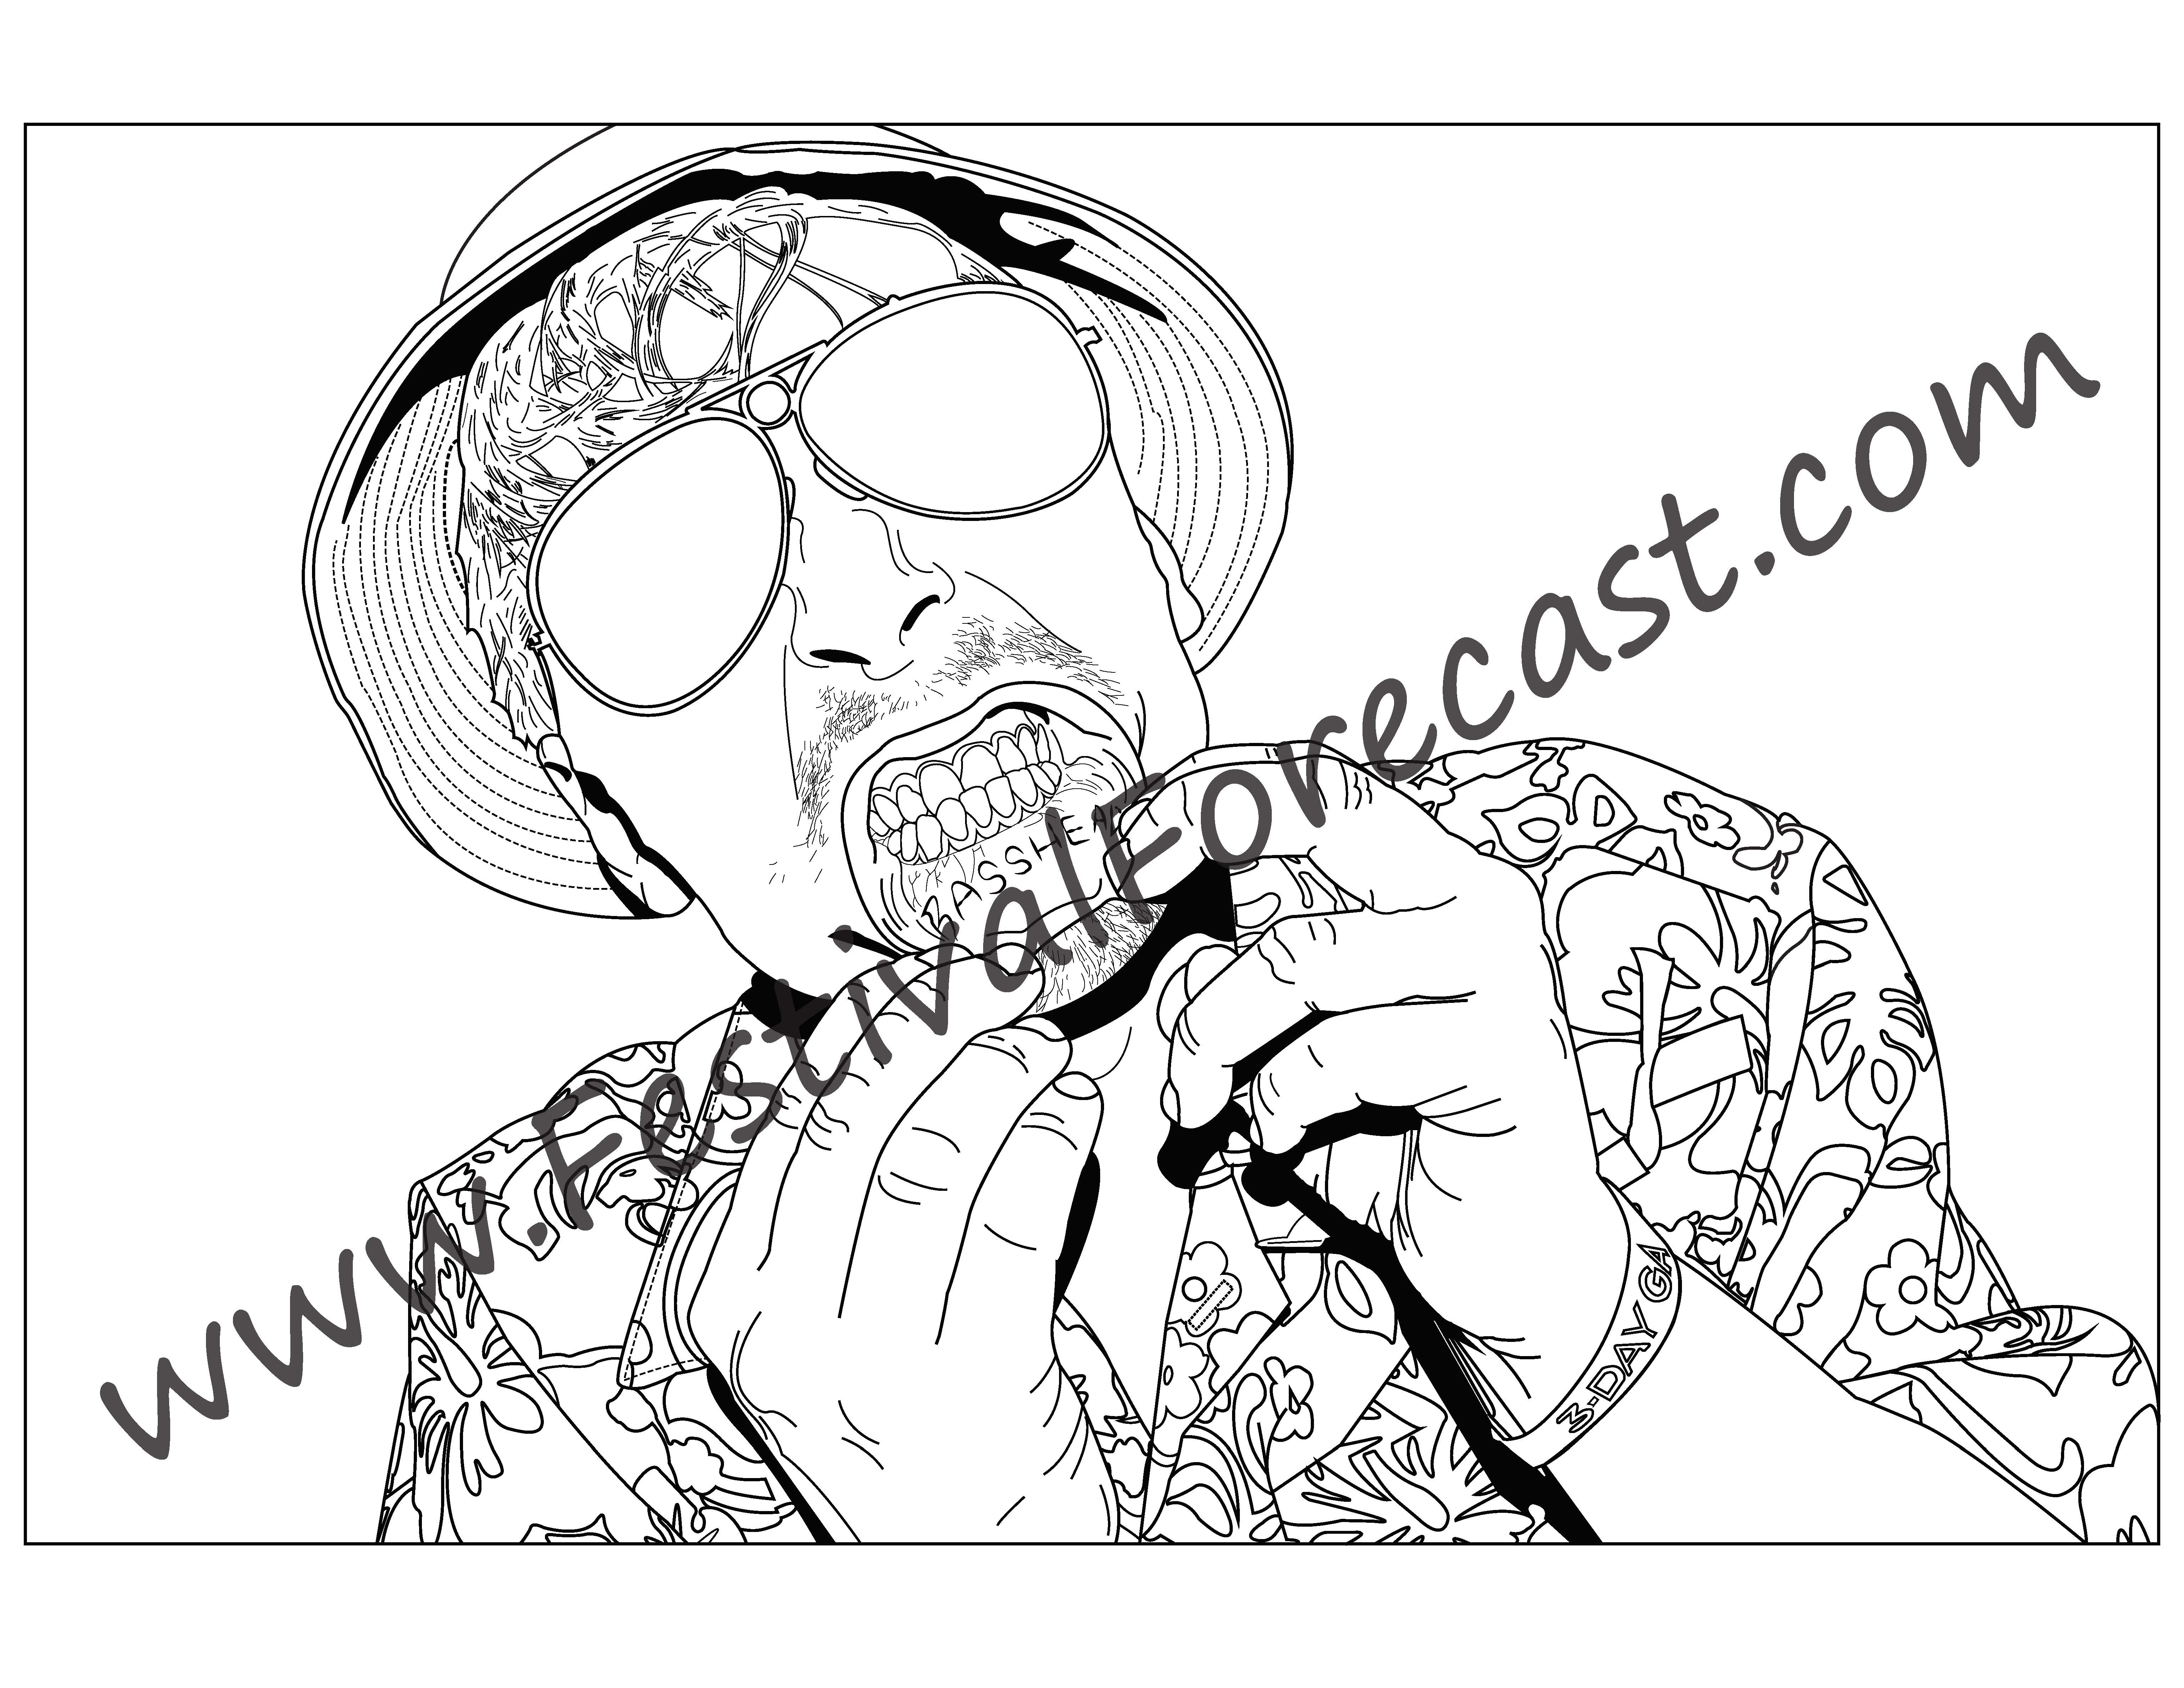 6160x4760 The Festival Forecast Coloring Book Festival Forecast